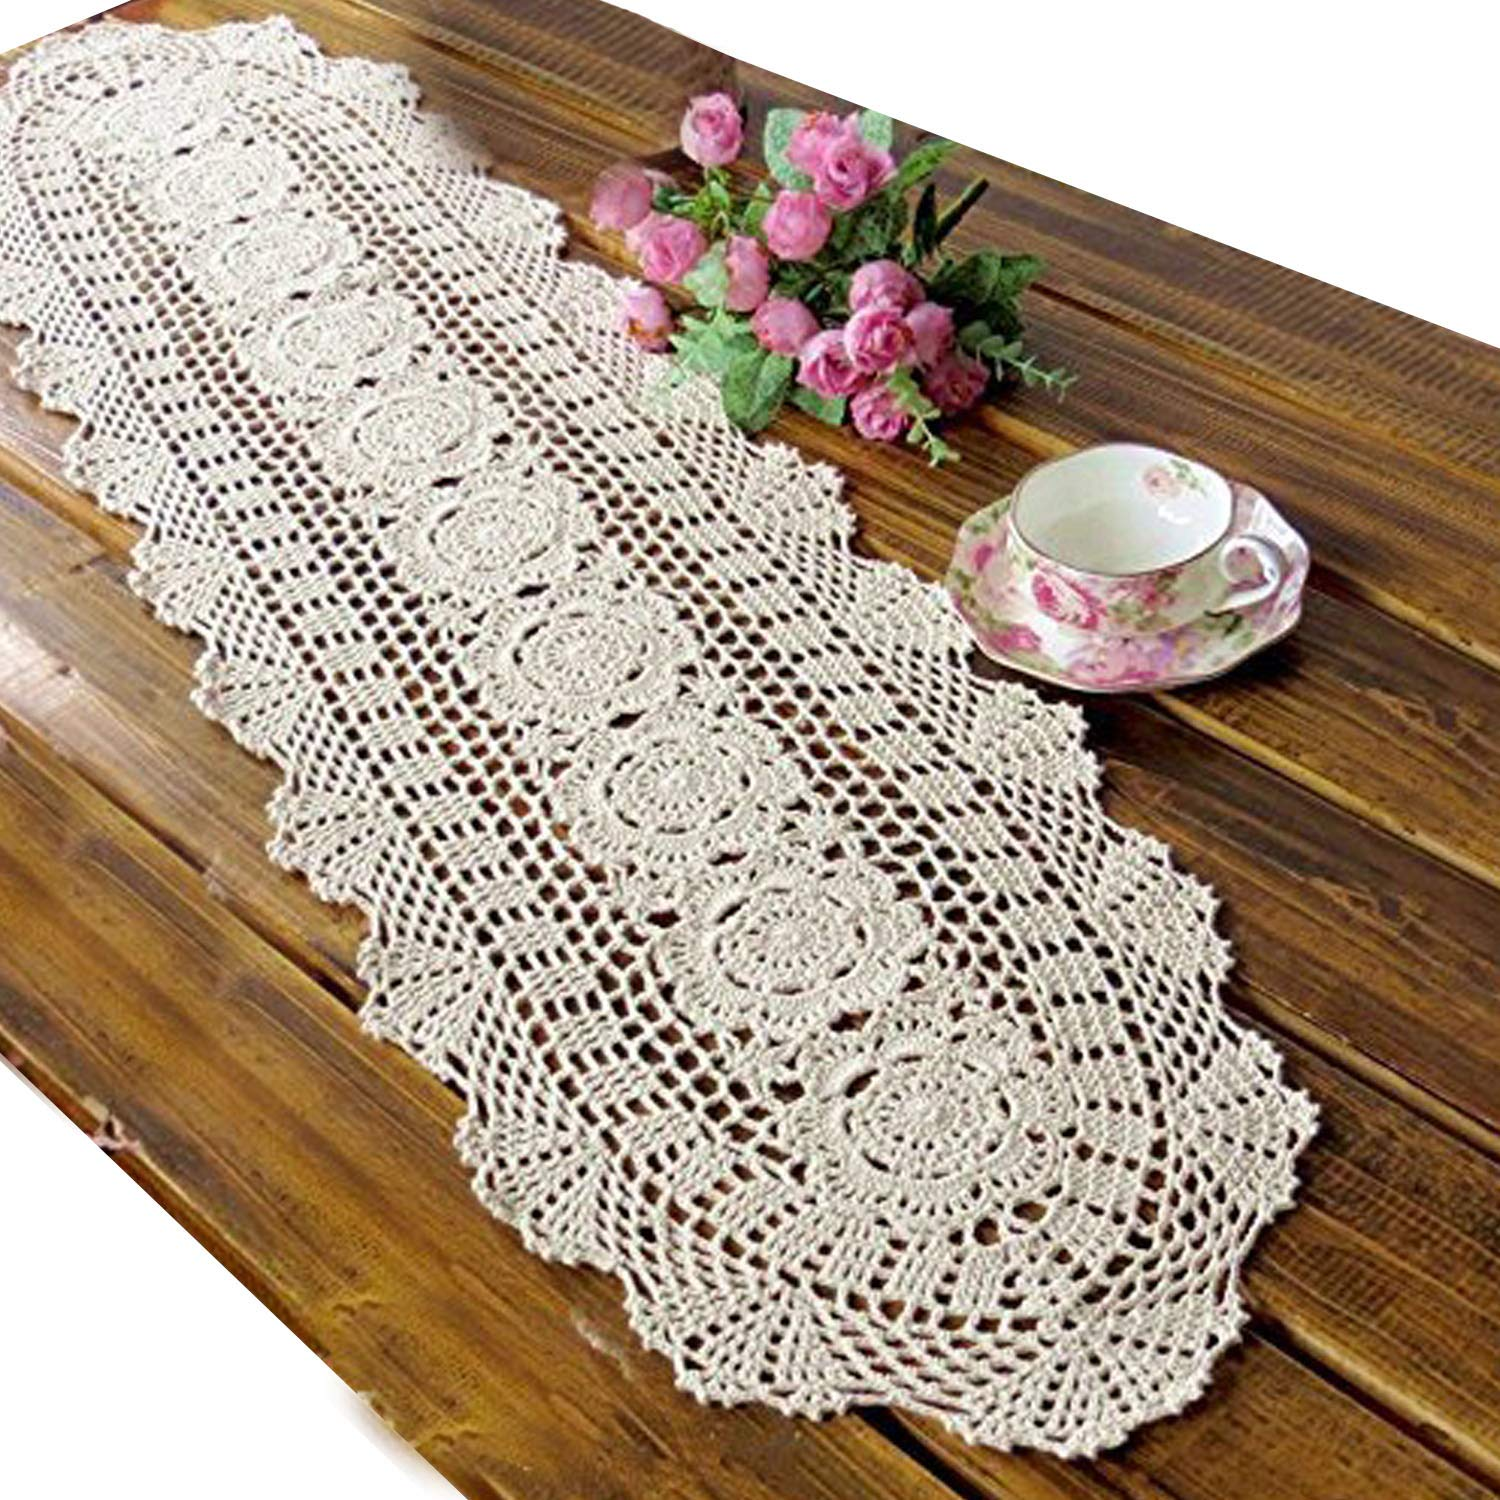 Lace Tablecloths Oval 300x300.jpg Amazon.com: USTIDE Rustic Floral Table Runners Oval Handmade Crochet Table  Cover Beige Cotton Table Runner Lace Tablecloth 11inchesX47inches: Home u0026  Kitchen